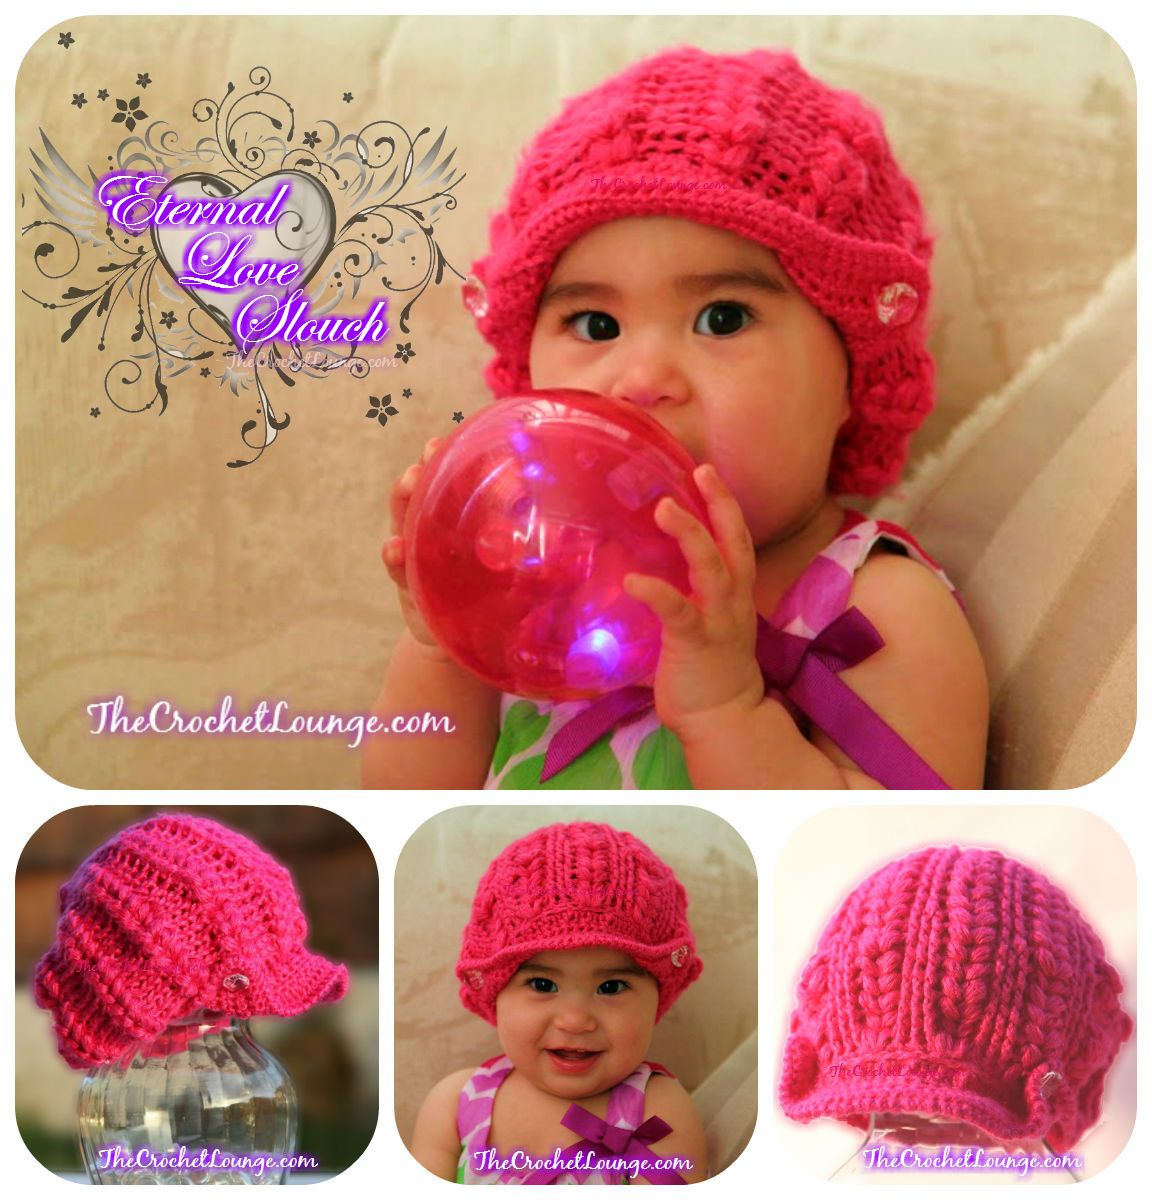 Eternal Love Baby Slouch - free crochet reversible slouch hat ...